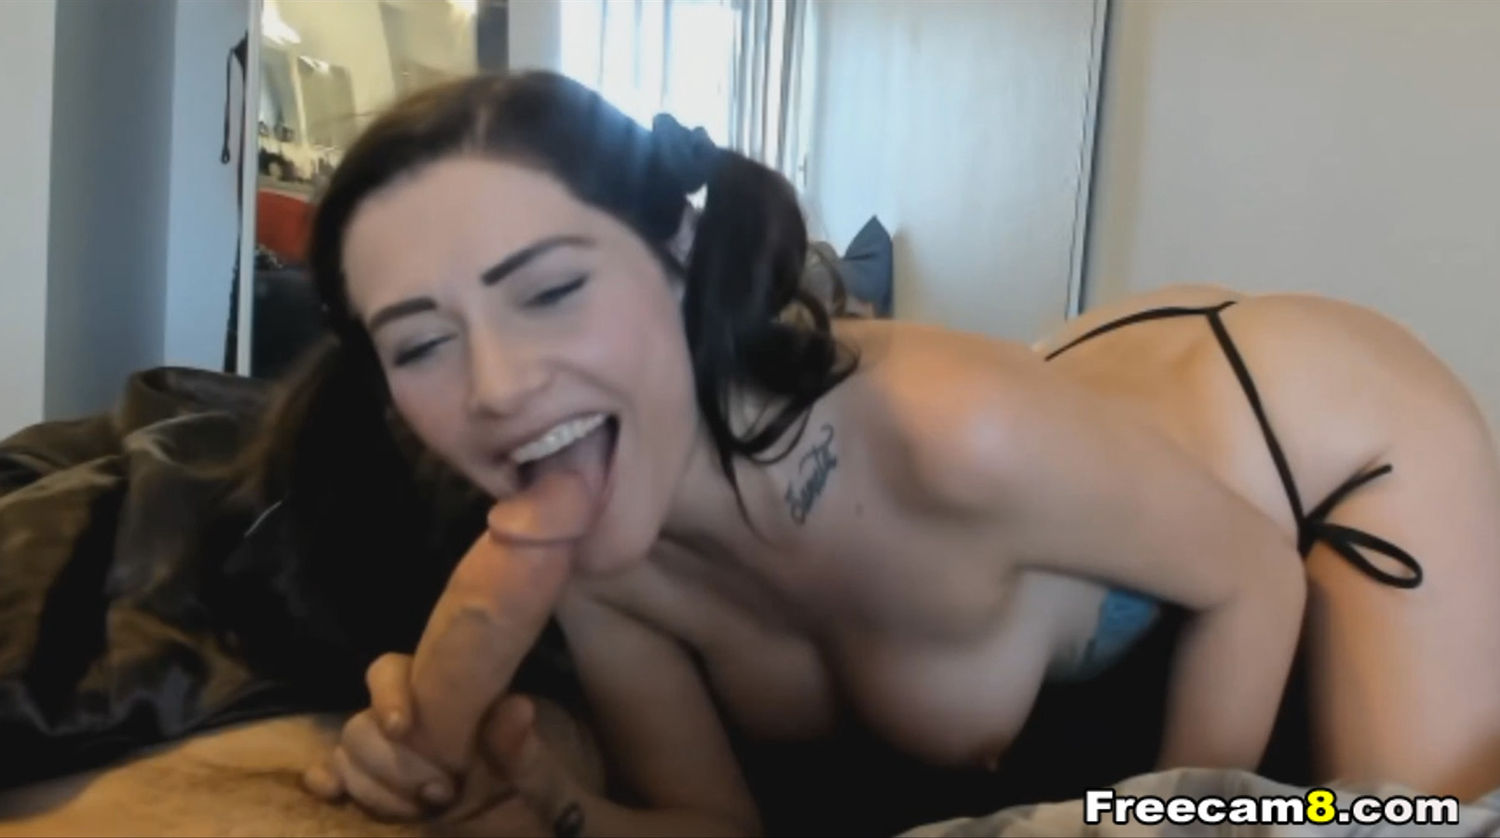 Big Tittied Babe Gives a Wet and Sloppy Blowjob